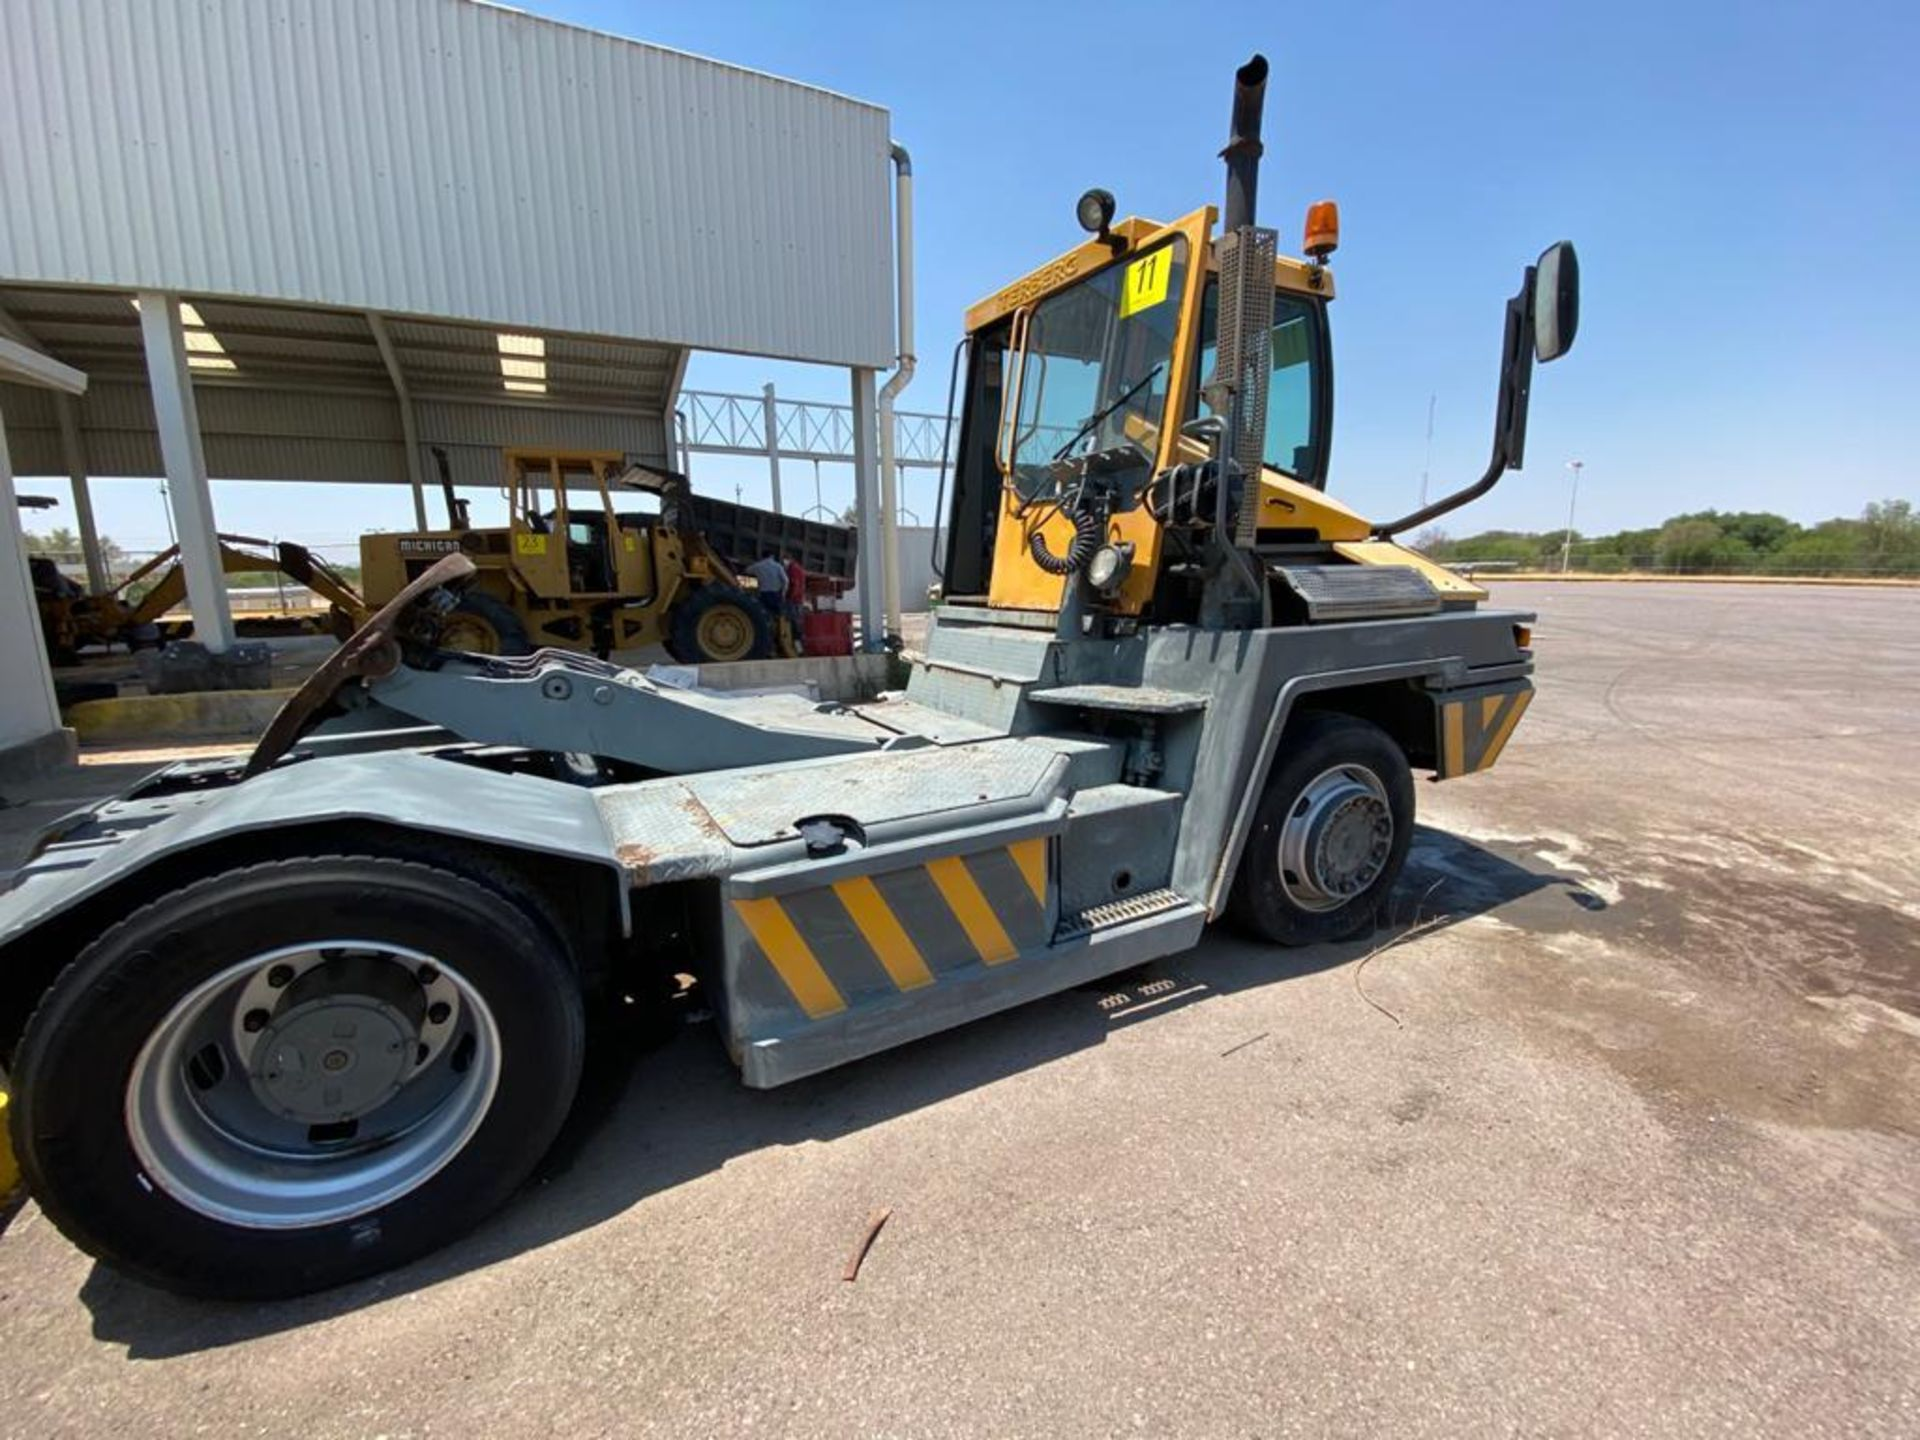 Terberg Capacity 2002 Terminal Tractor, automatic transmission, with Volvo motor - Image 16 of 57